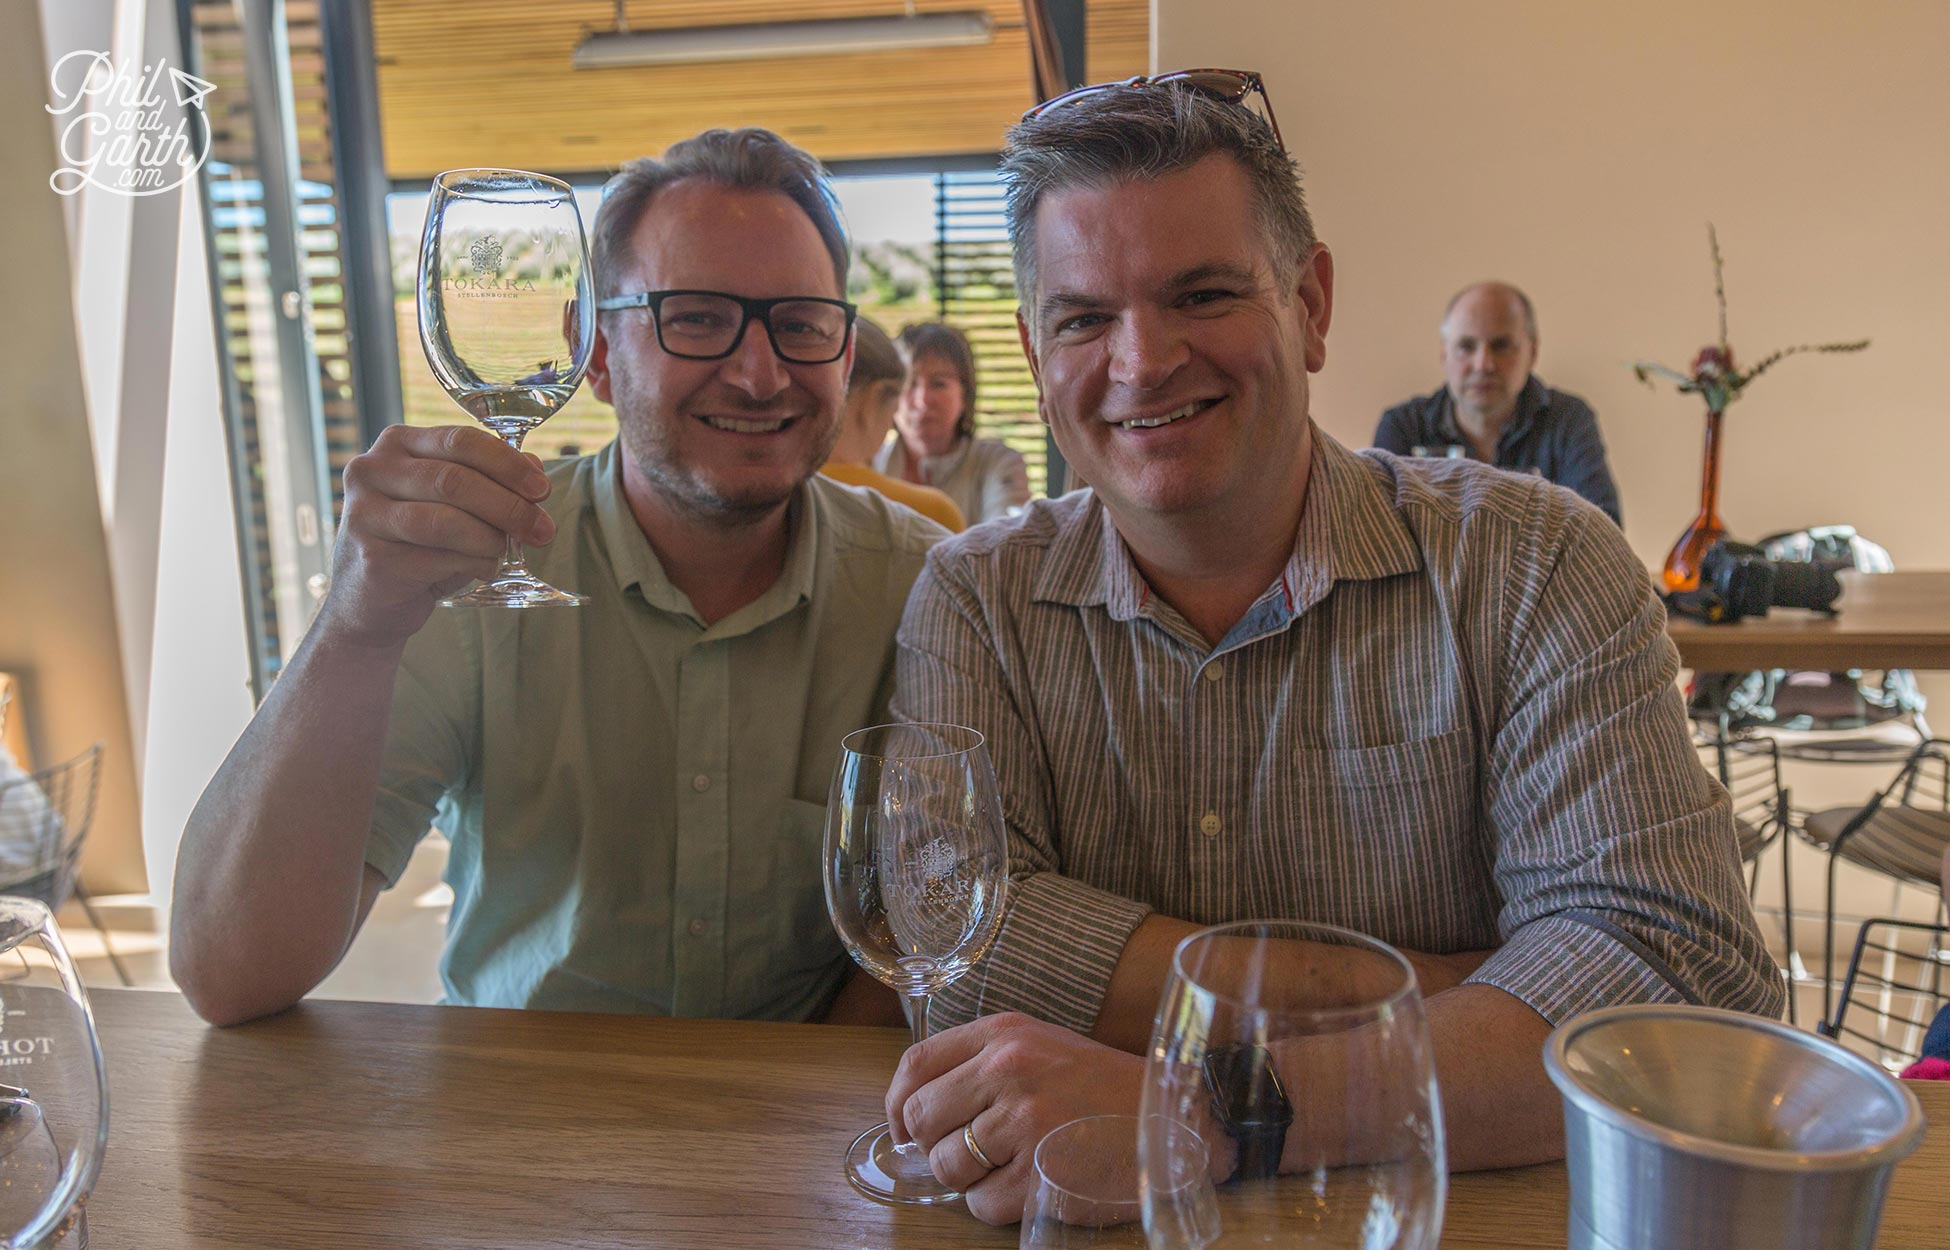 Garth and Phil enjoying the wine tasting at Tokara